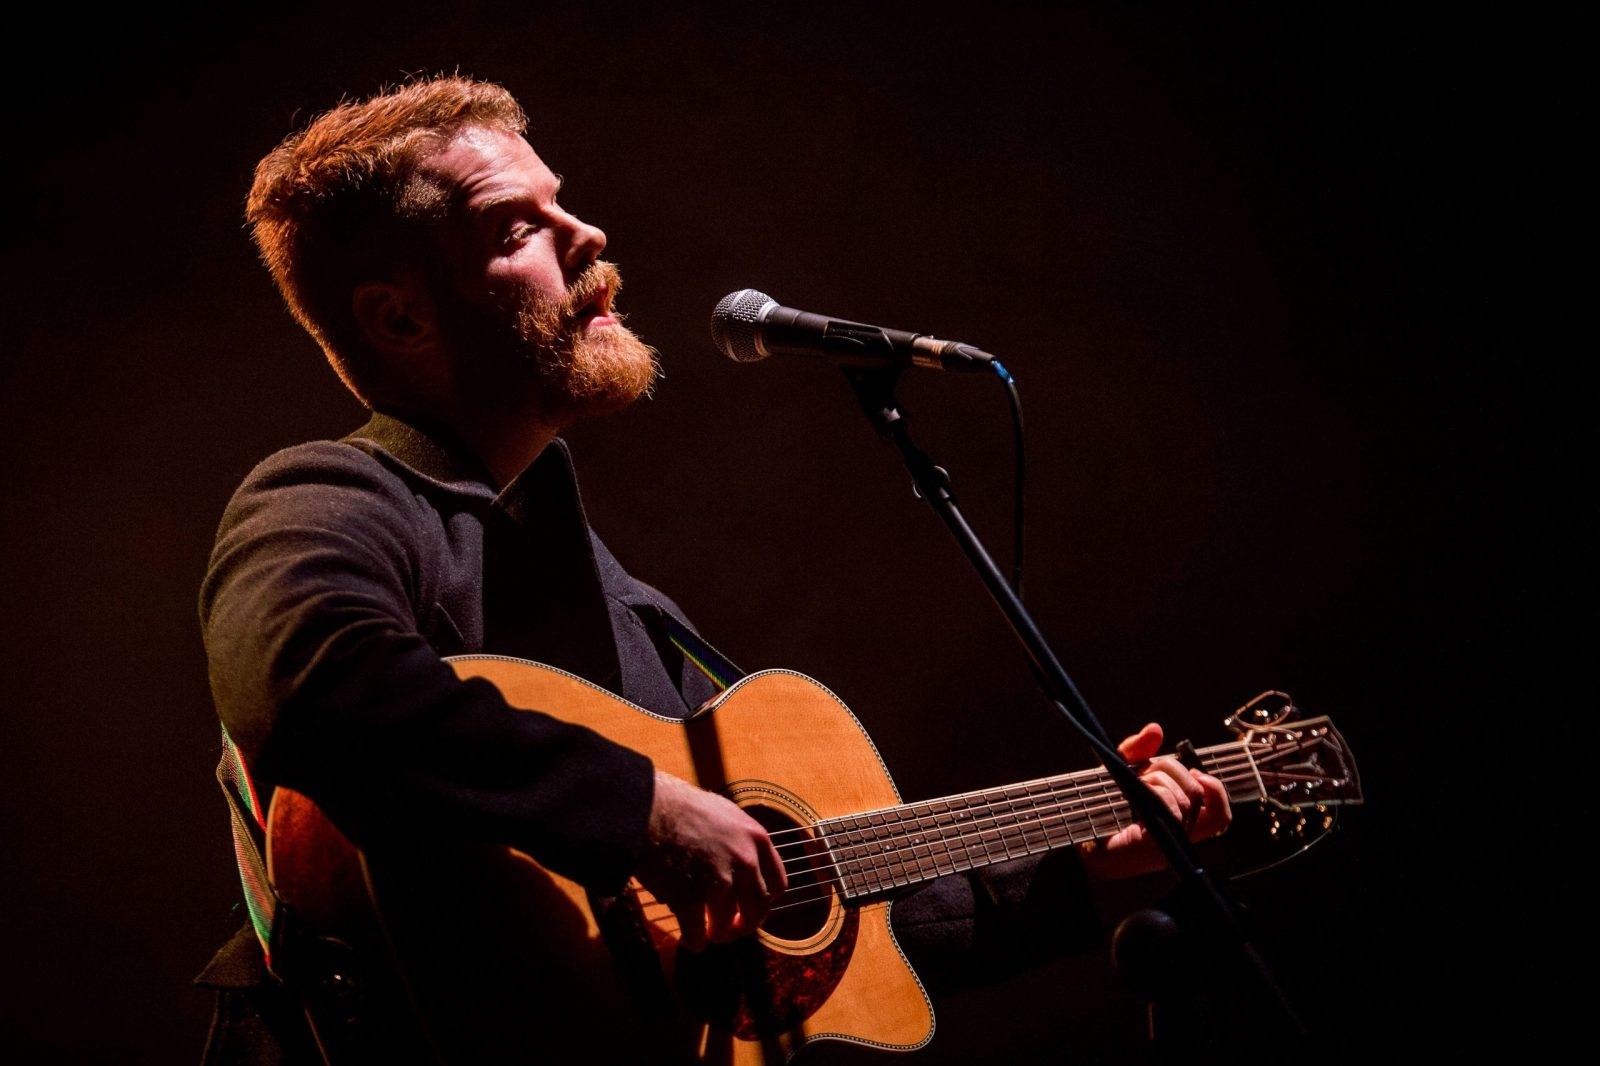 James Vincent McMorrow @ The Ulster Hall 2